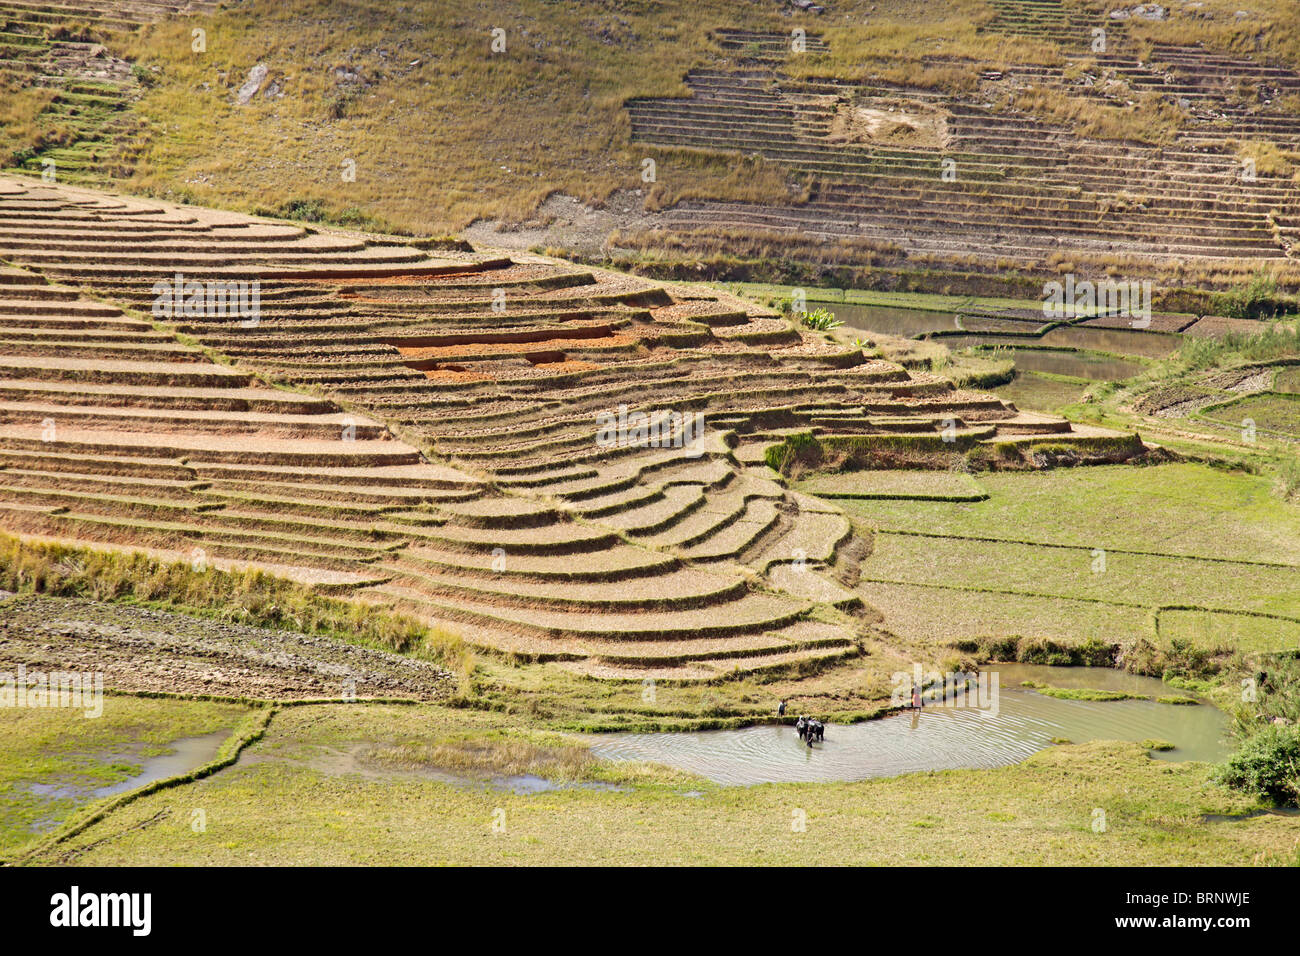 Terracing and paddyfields in the central Highlands or Madagascar - Stock Image